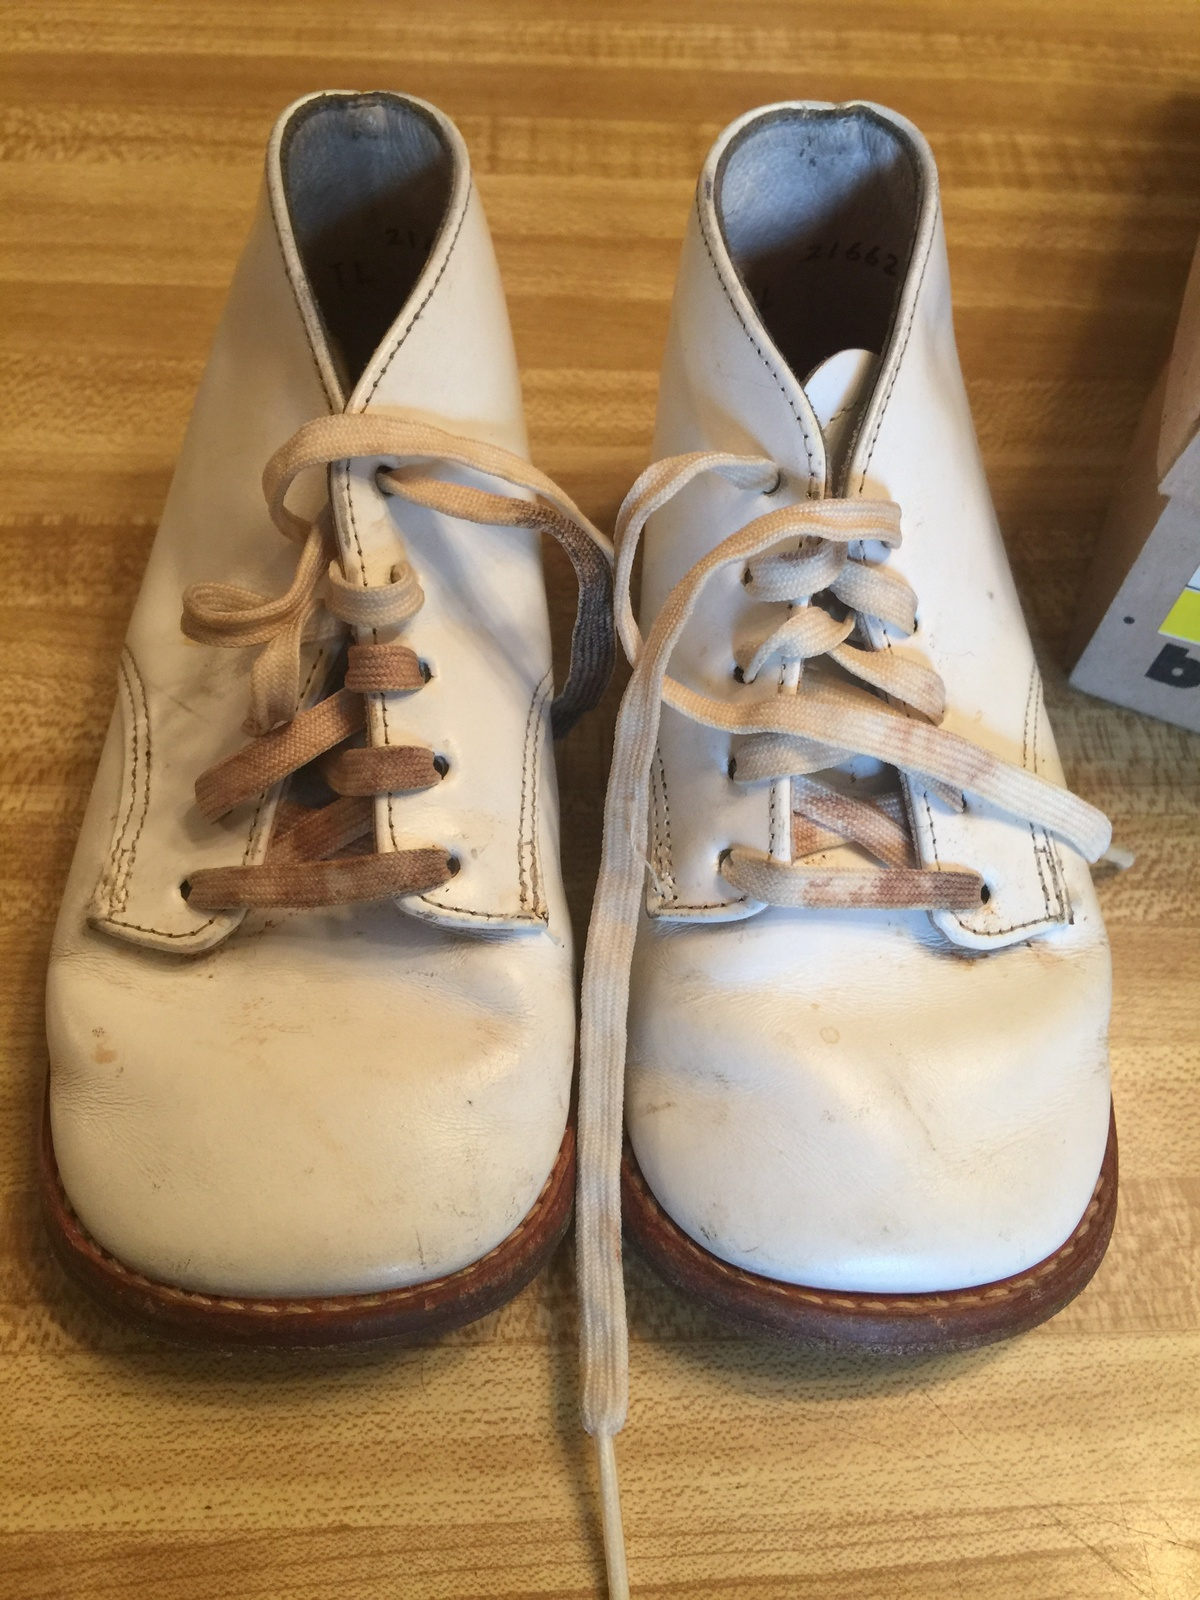 VTG 80s BUSTER BROWN White Leather Baby Hard Sole Walking Shoes 289B10 sz 6E/Box